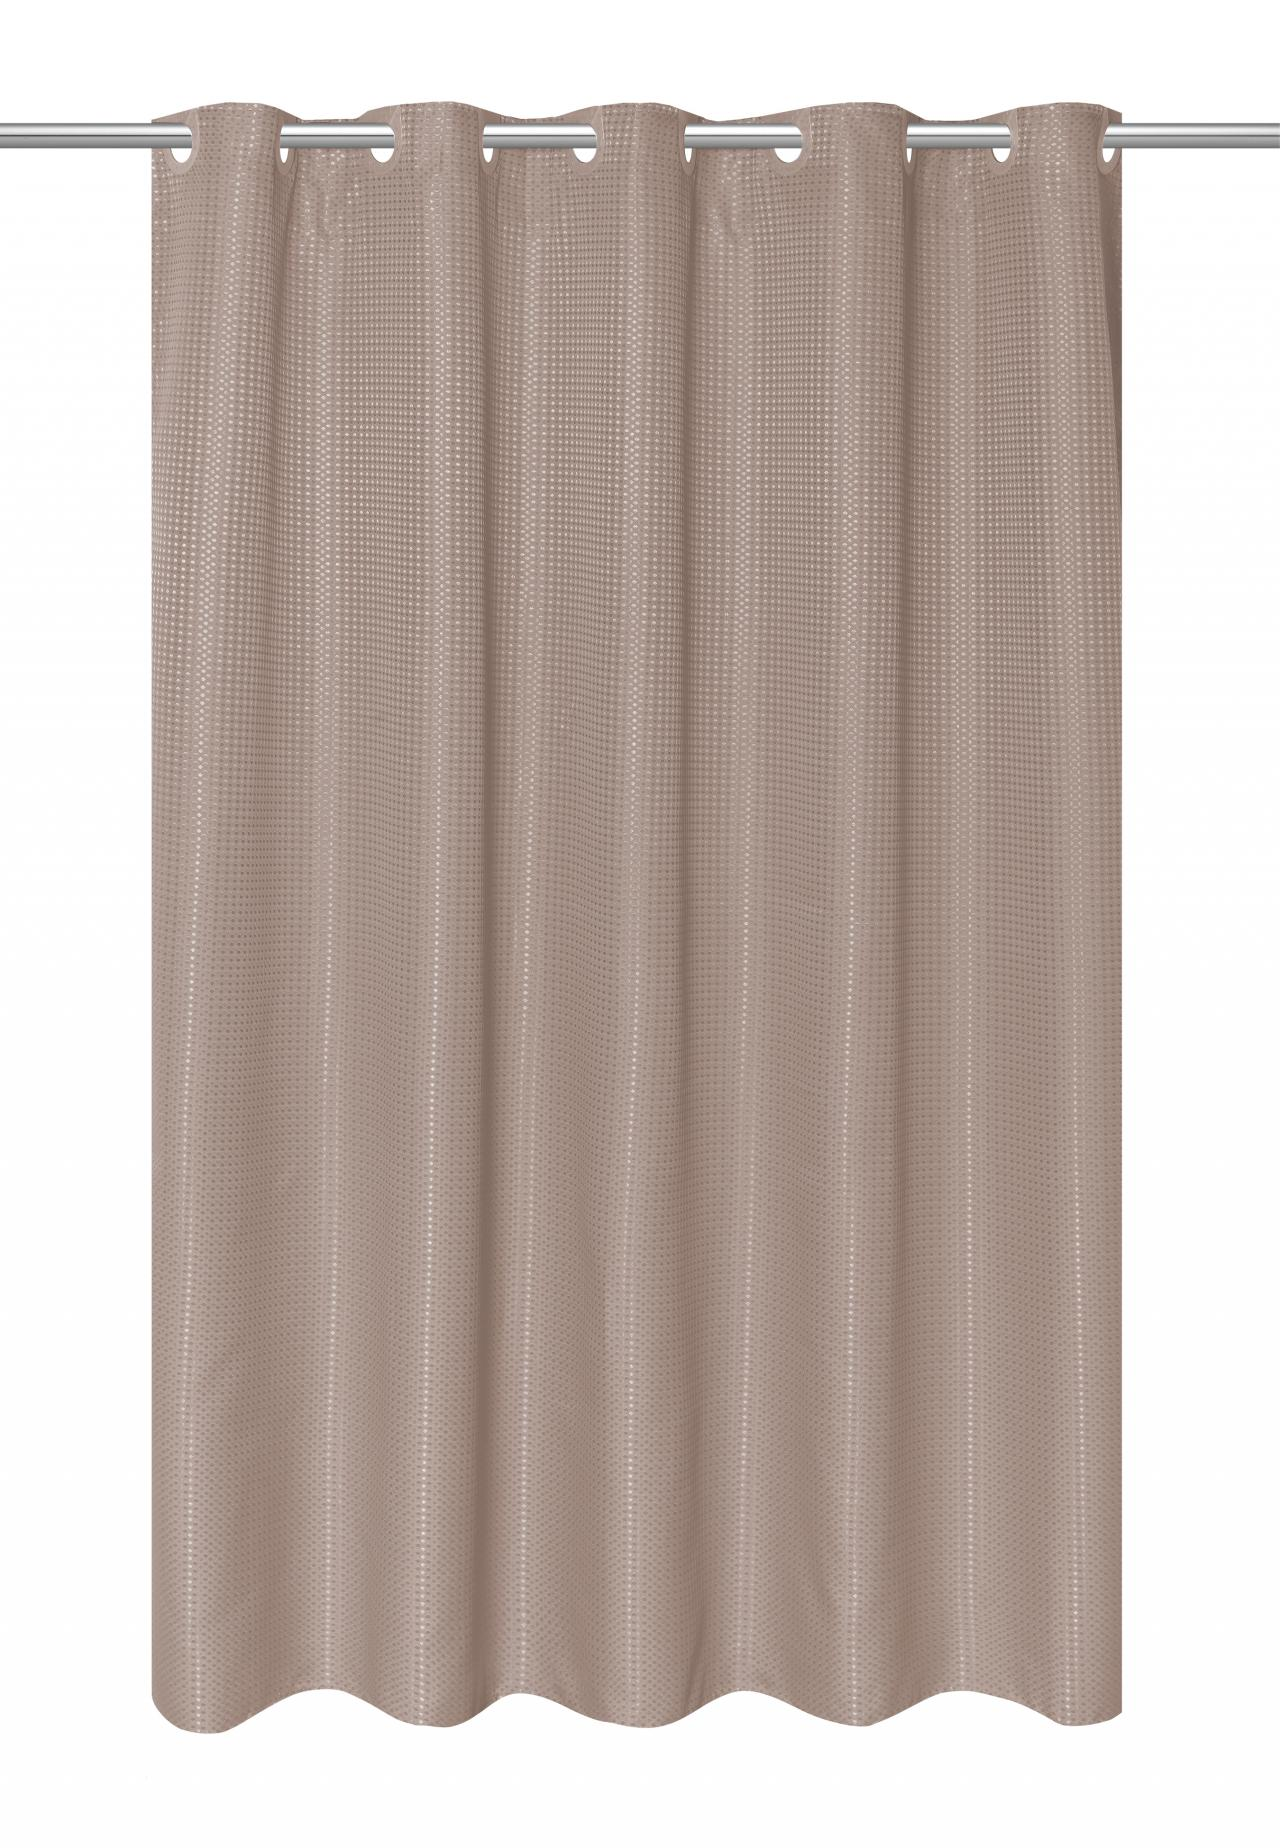 Carnation Home Fashions, Inc - EZ On Waffle Weave Shower Curtains